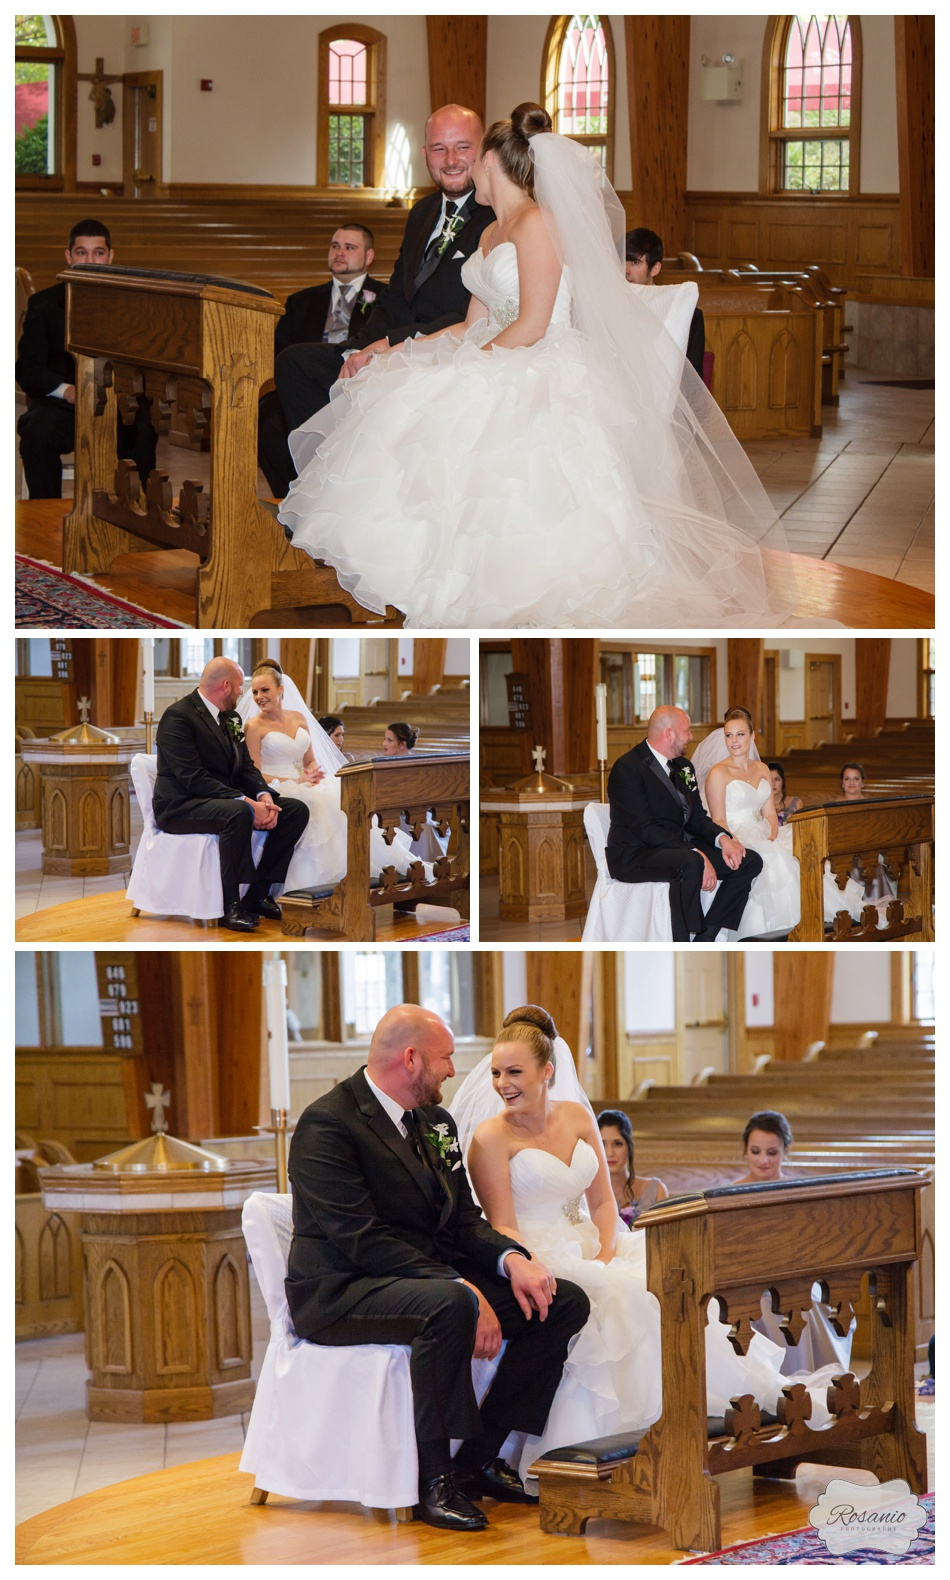 Rosanio Photography | Diburro's Haverhill MA | Massachusetts Wedding Photographer_0042.jpg